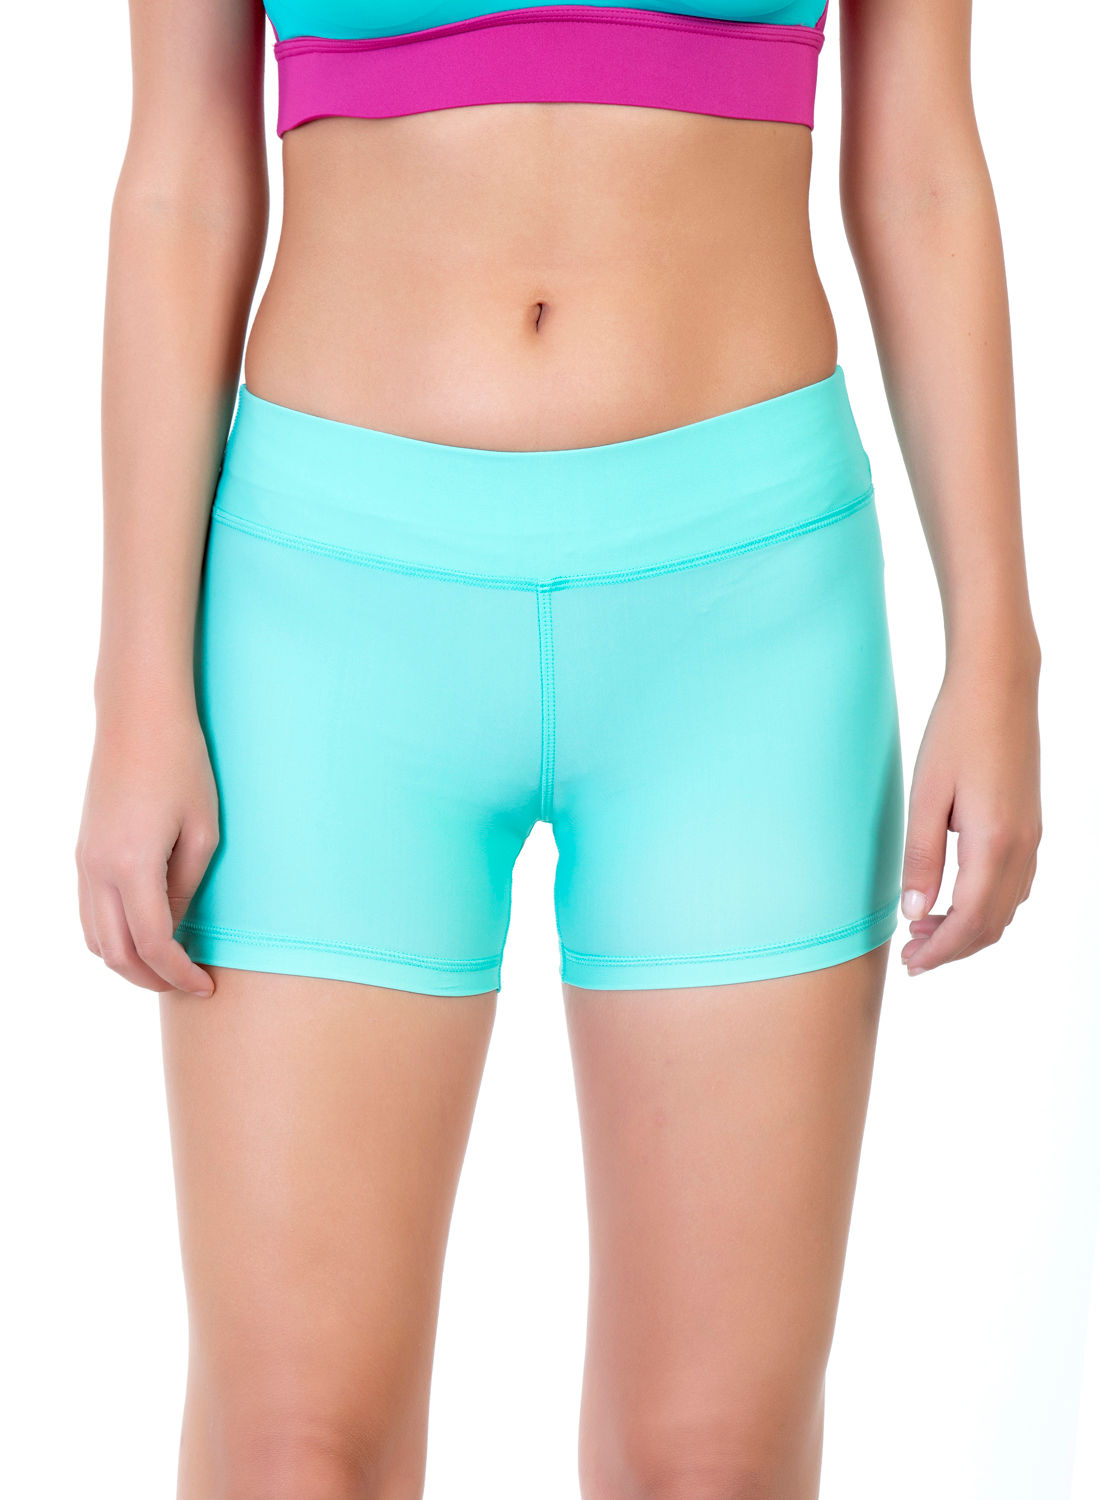 Envie Women S Casual Cotton Lycra Blue Shorts Buy Envie Women S Casual Cotton Lycra Blue Shorts Online At Best Price In India Nykaa